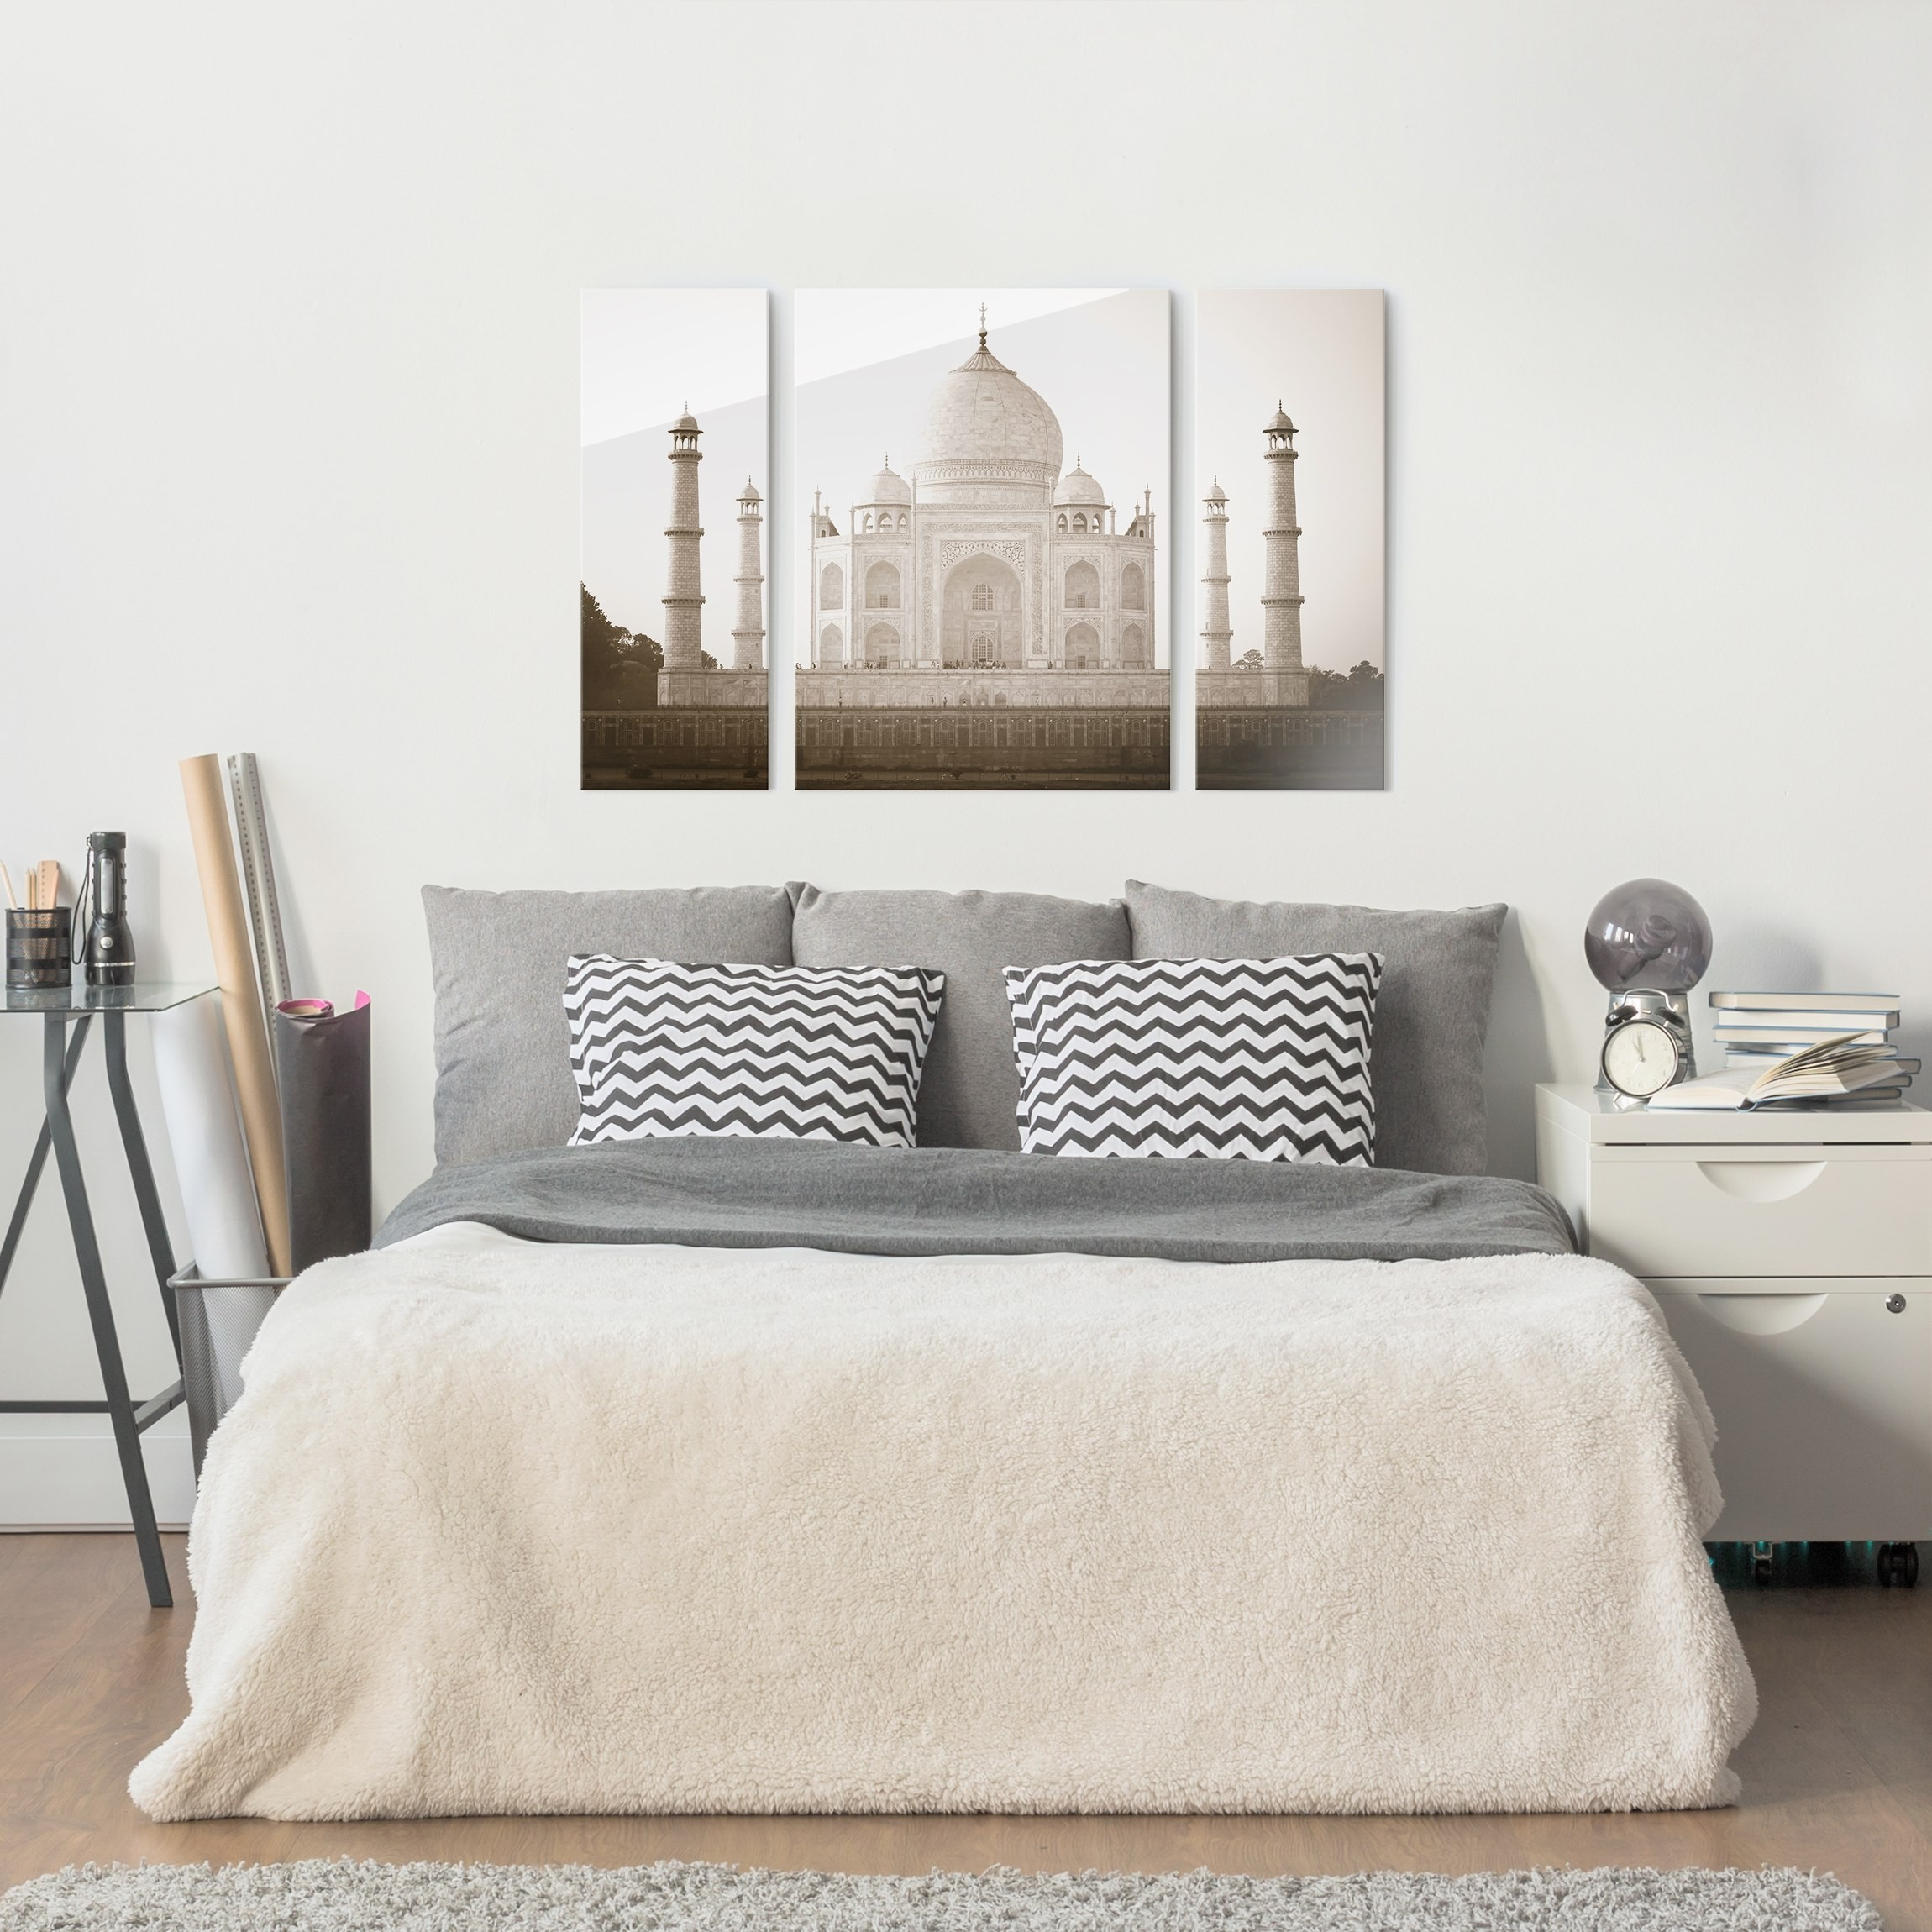 glasbild mehrteilig taj mahal 3 teilig. Black Bedroom Furniture Sets. Home Design Ideas